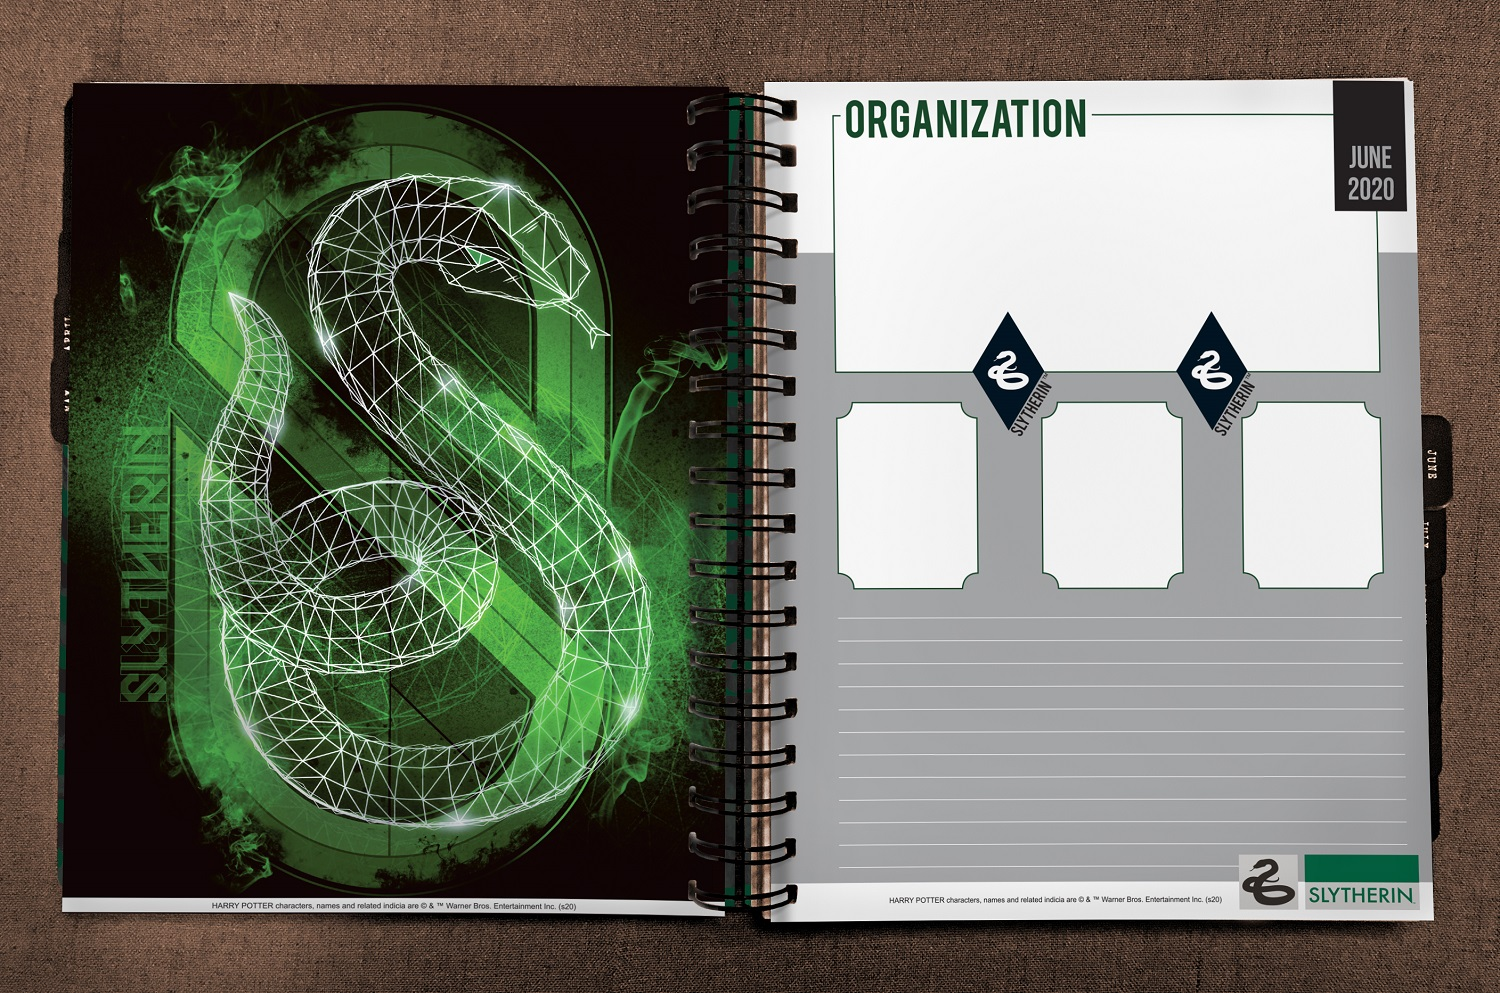 ConQuest Harry Potter Slytherin 2020 inside spread